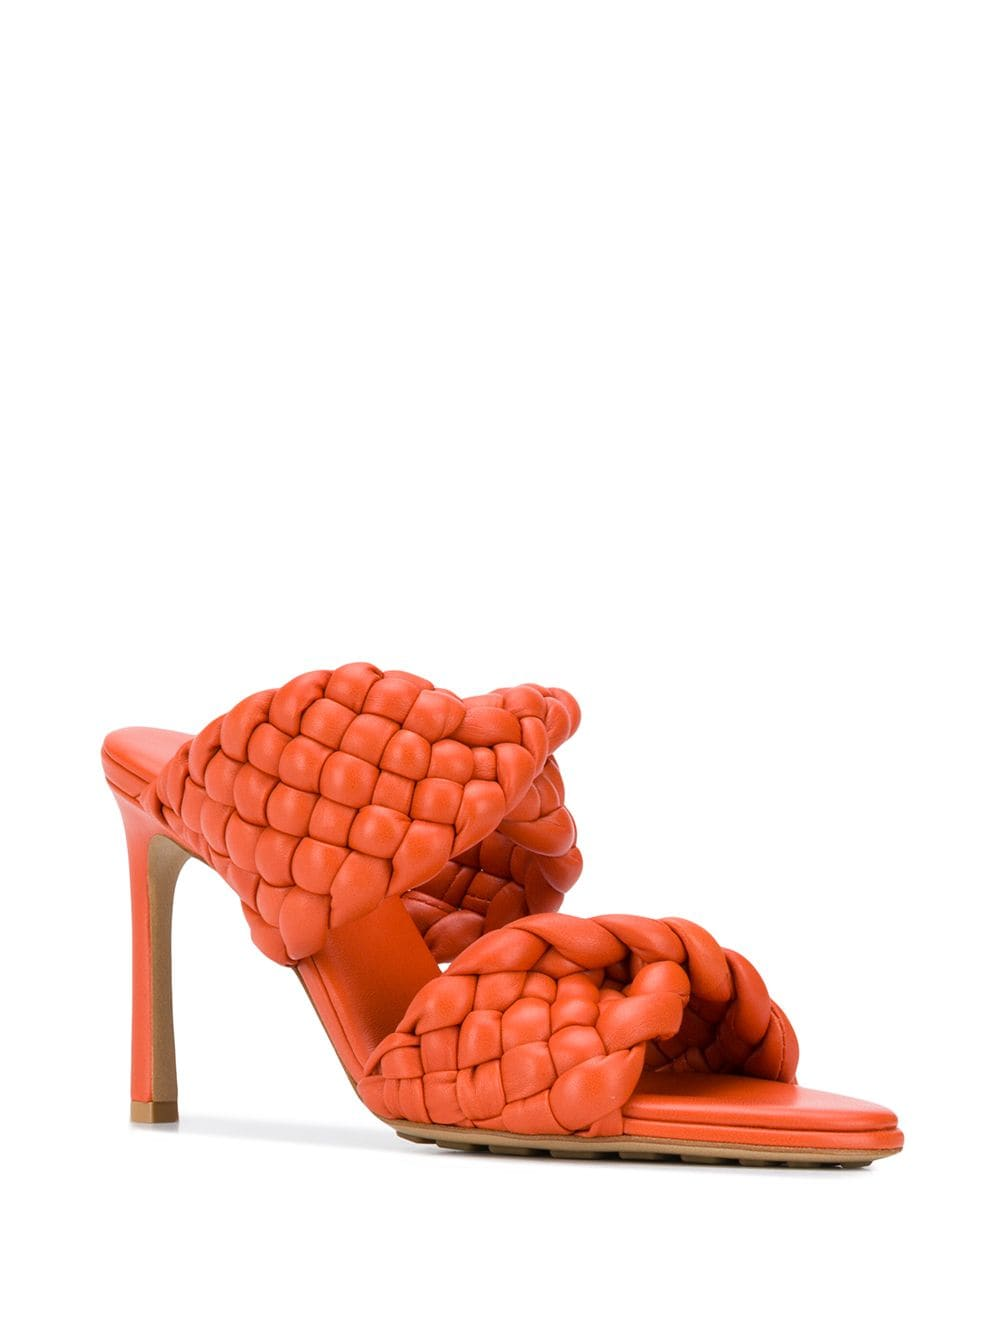 The Curve Sandal - Orange 3/4